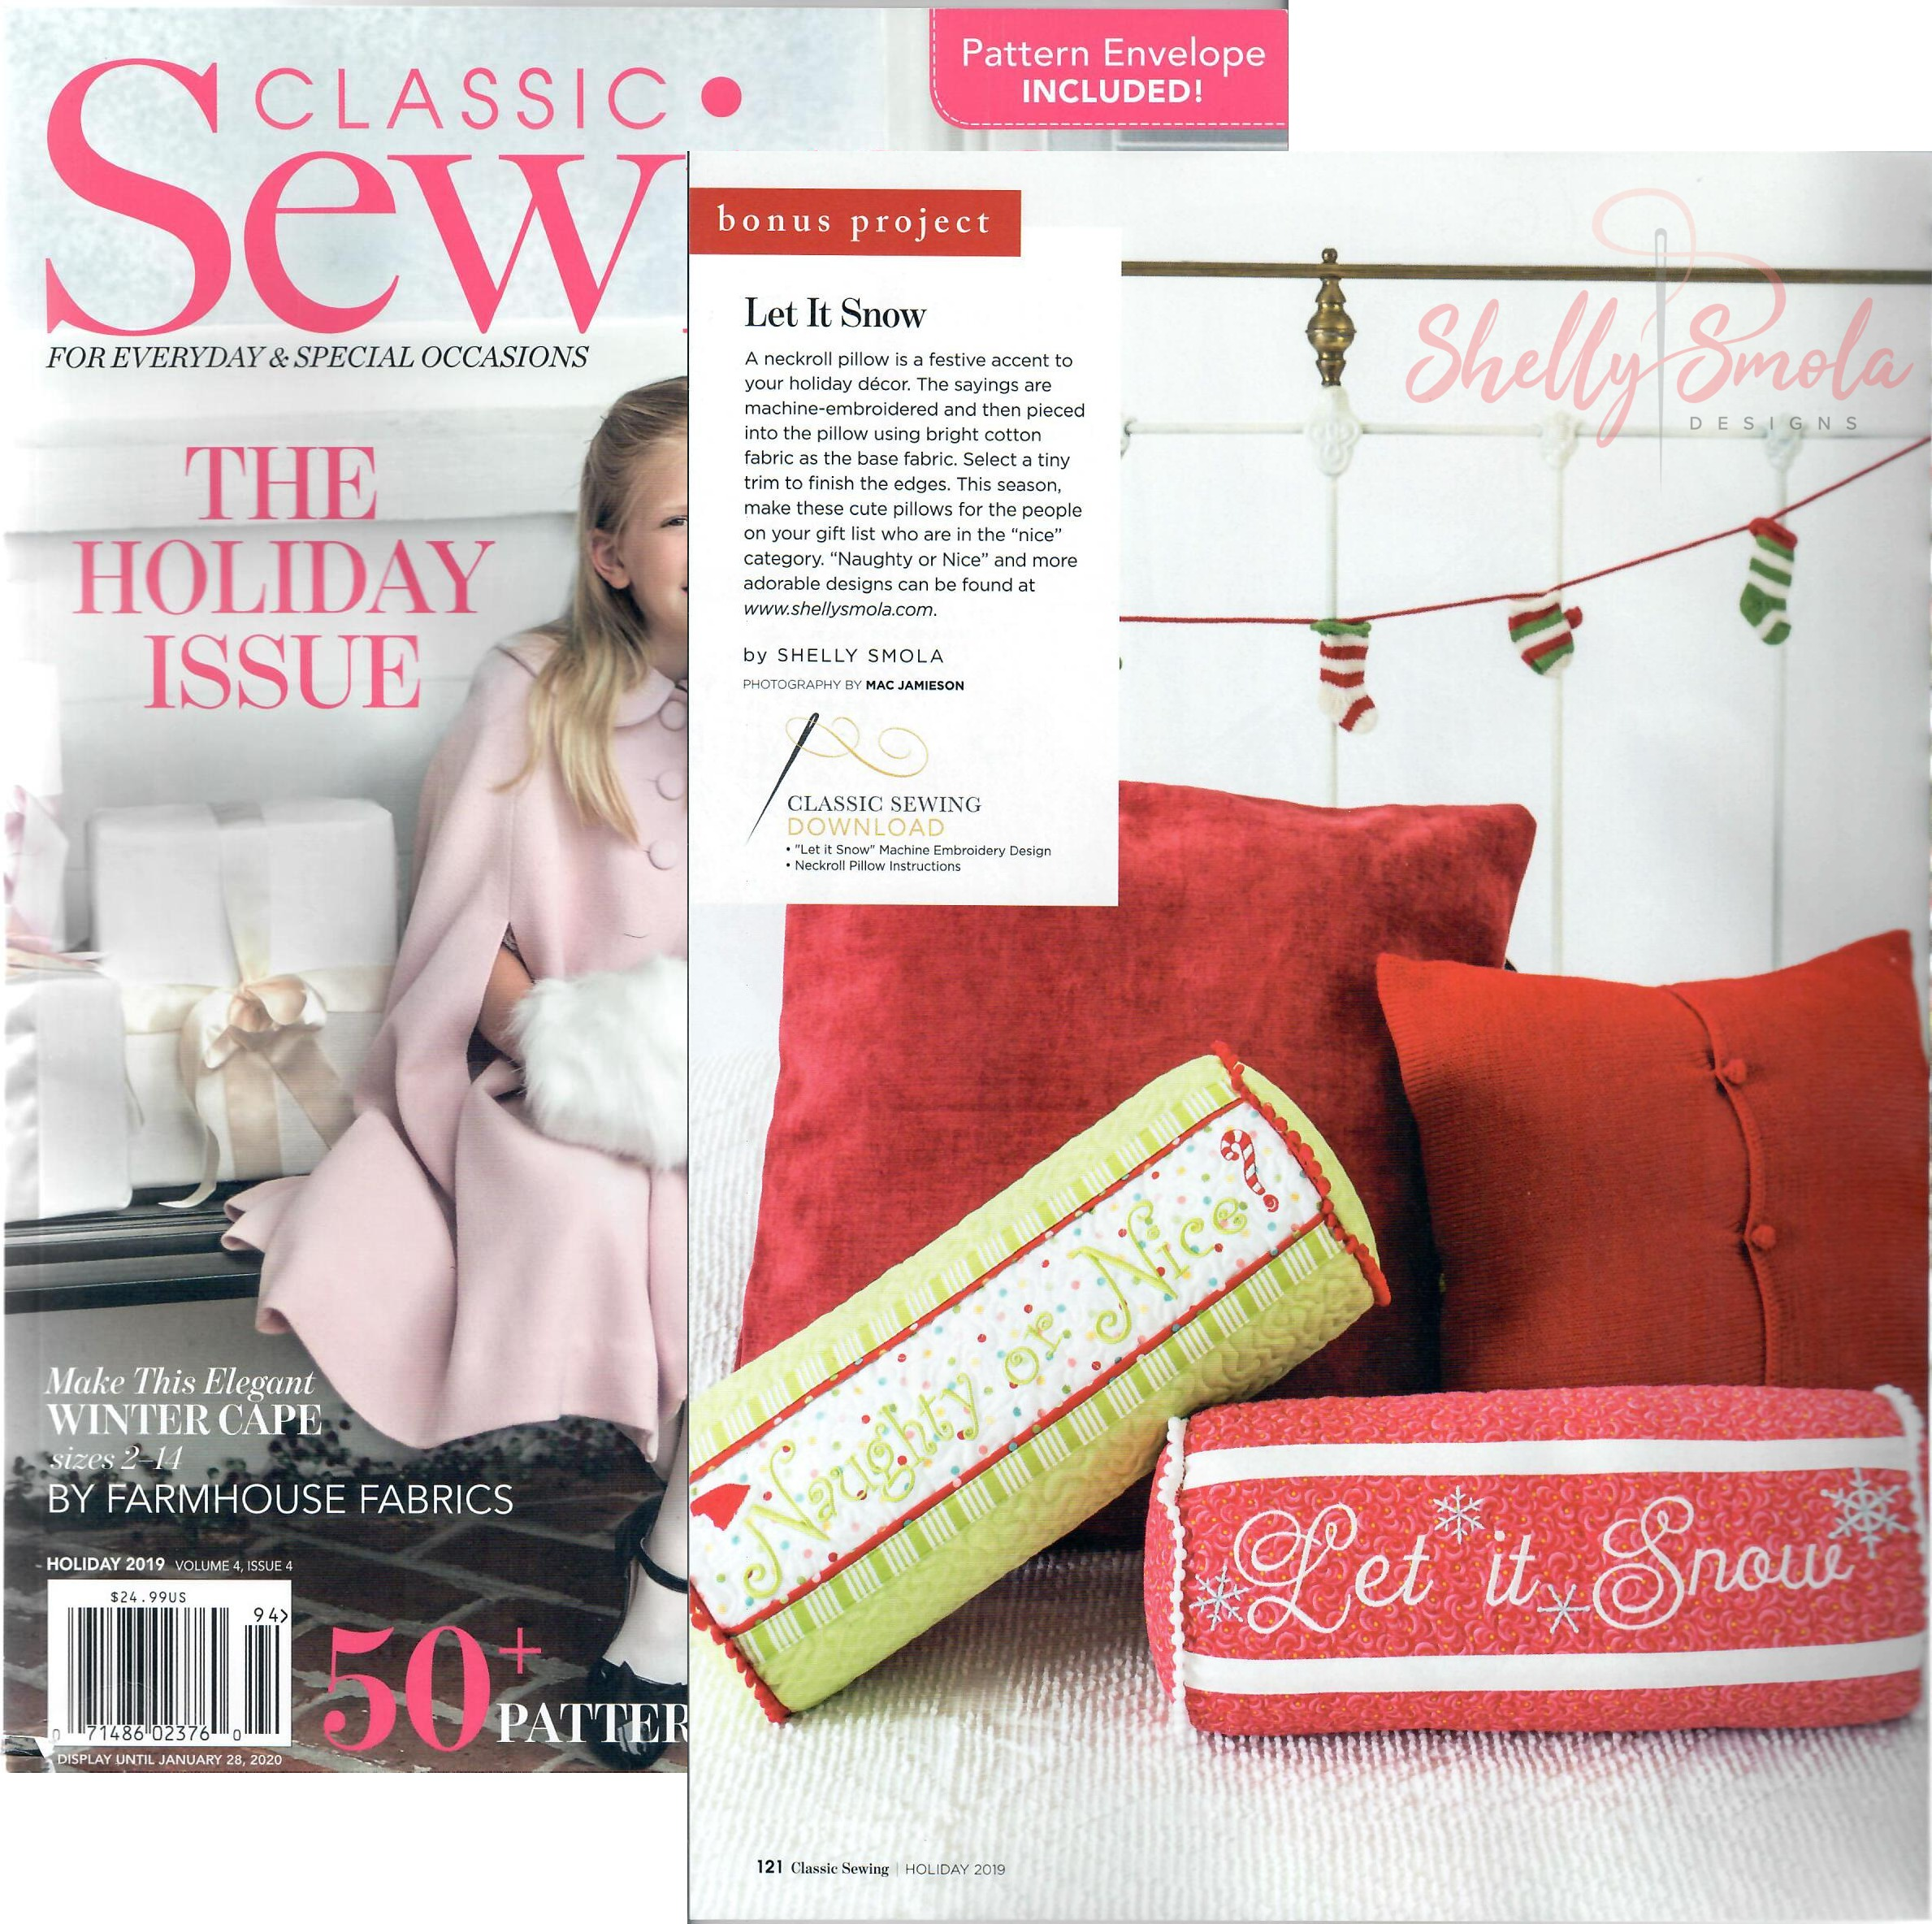 Classic Sewing Holiday 2019